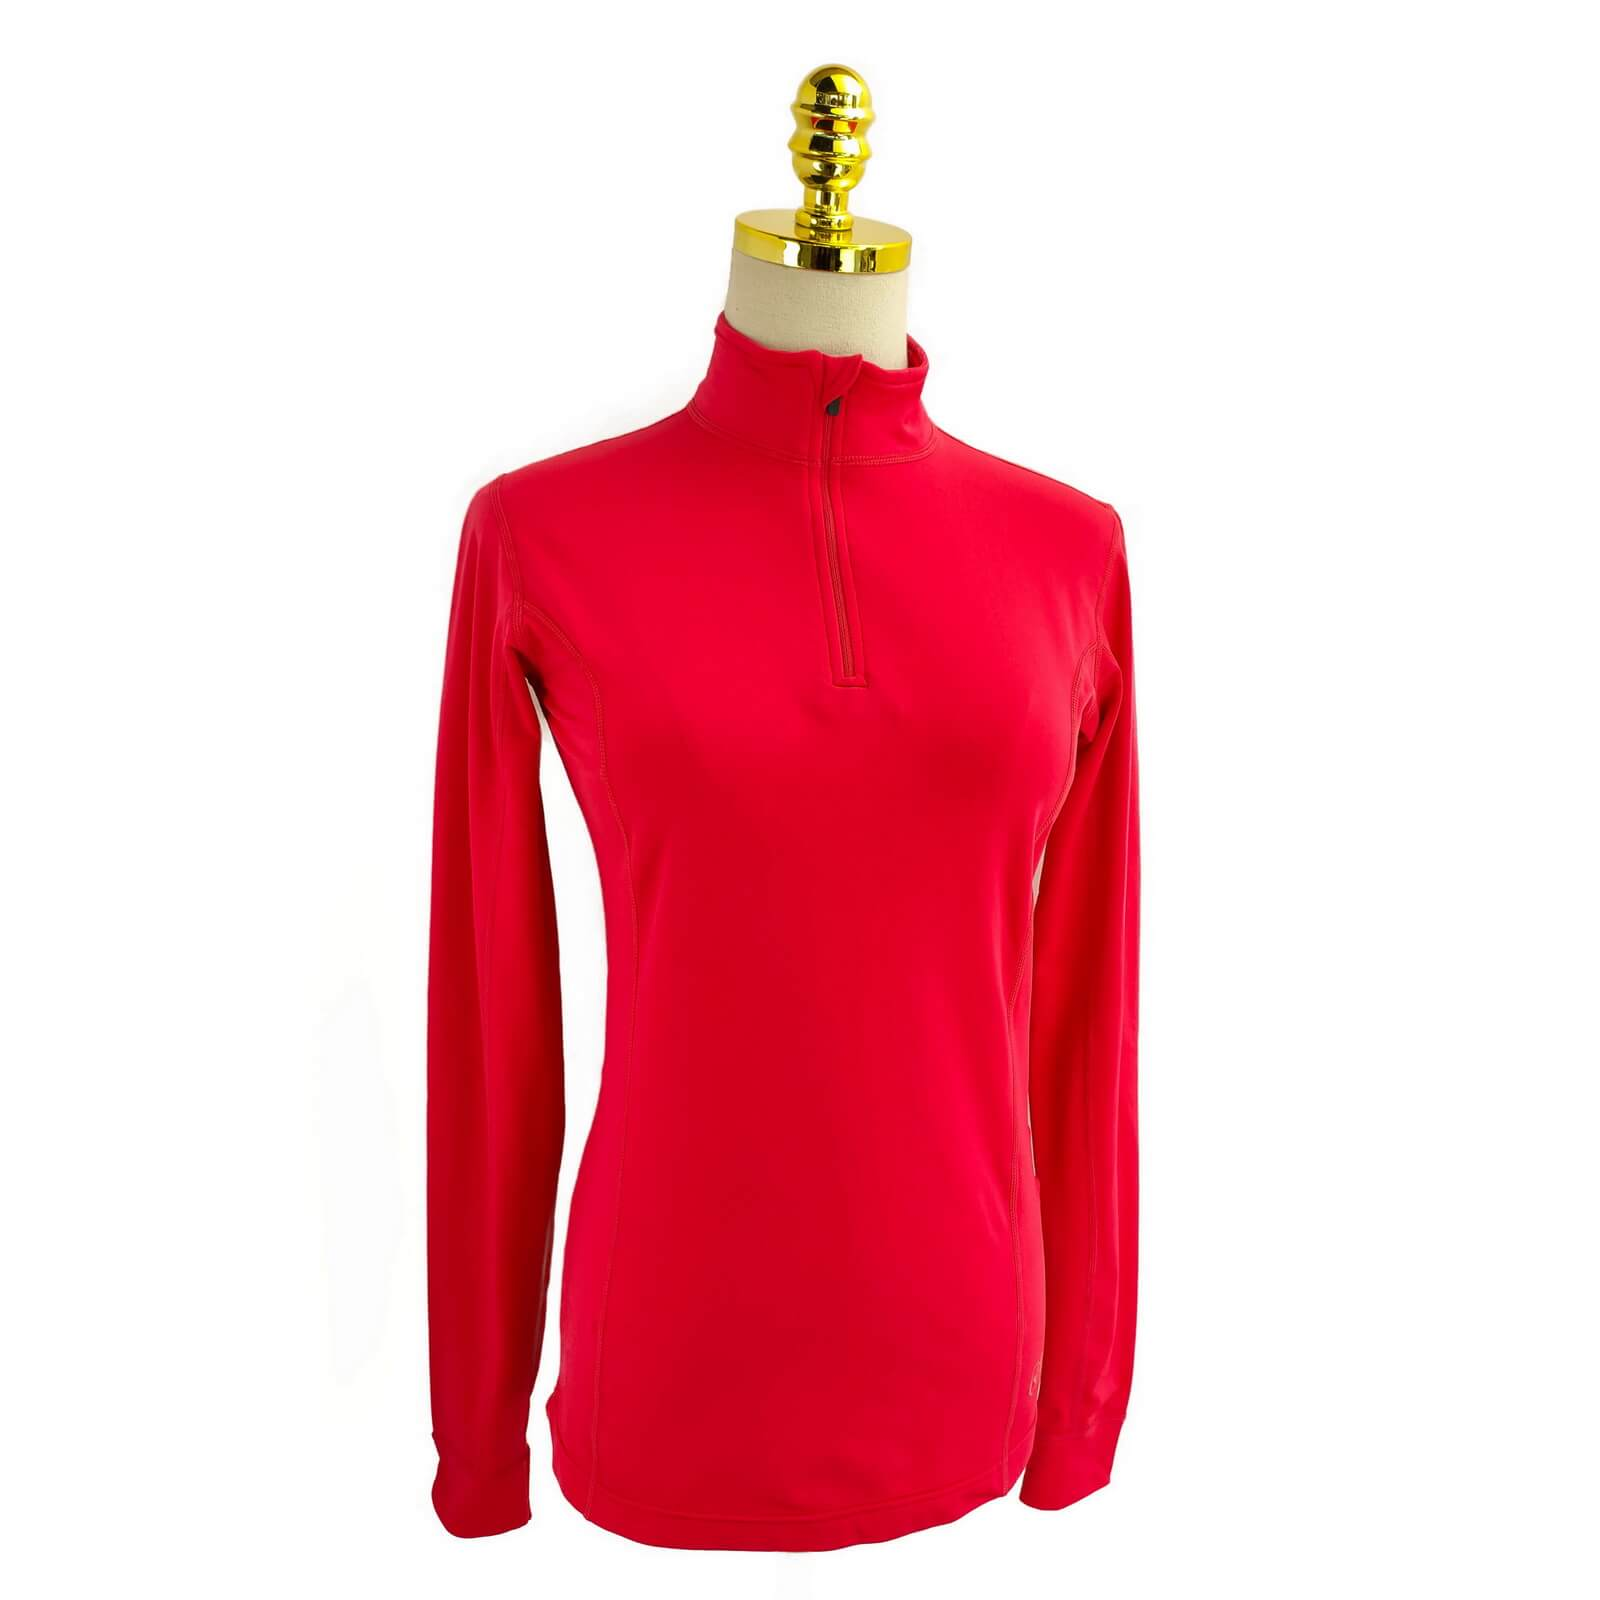 Women's Active Shirt